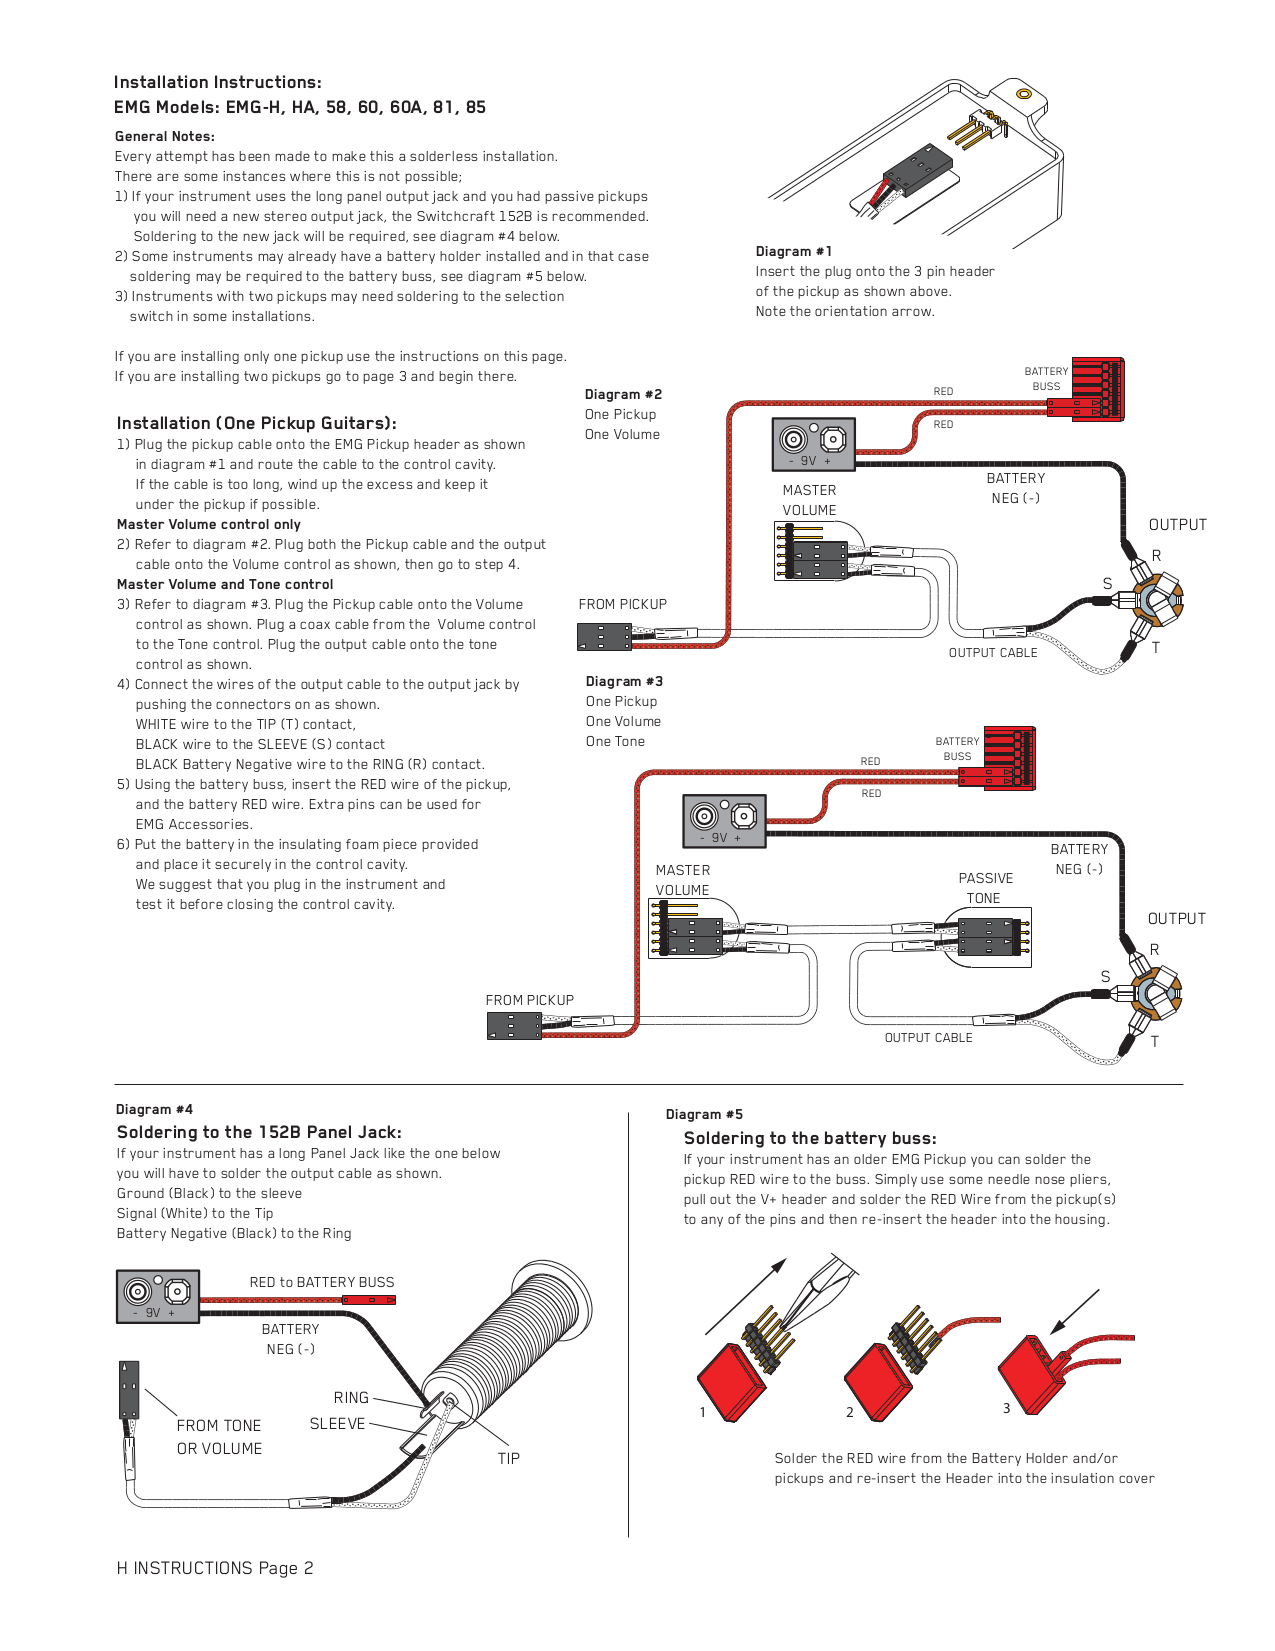 electric guitar wiring diagrams emg simple flow charts, Wiring diagram